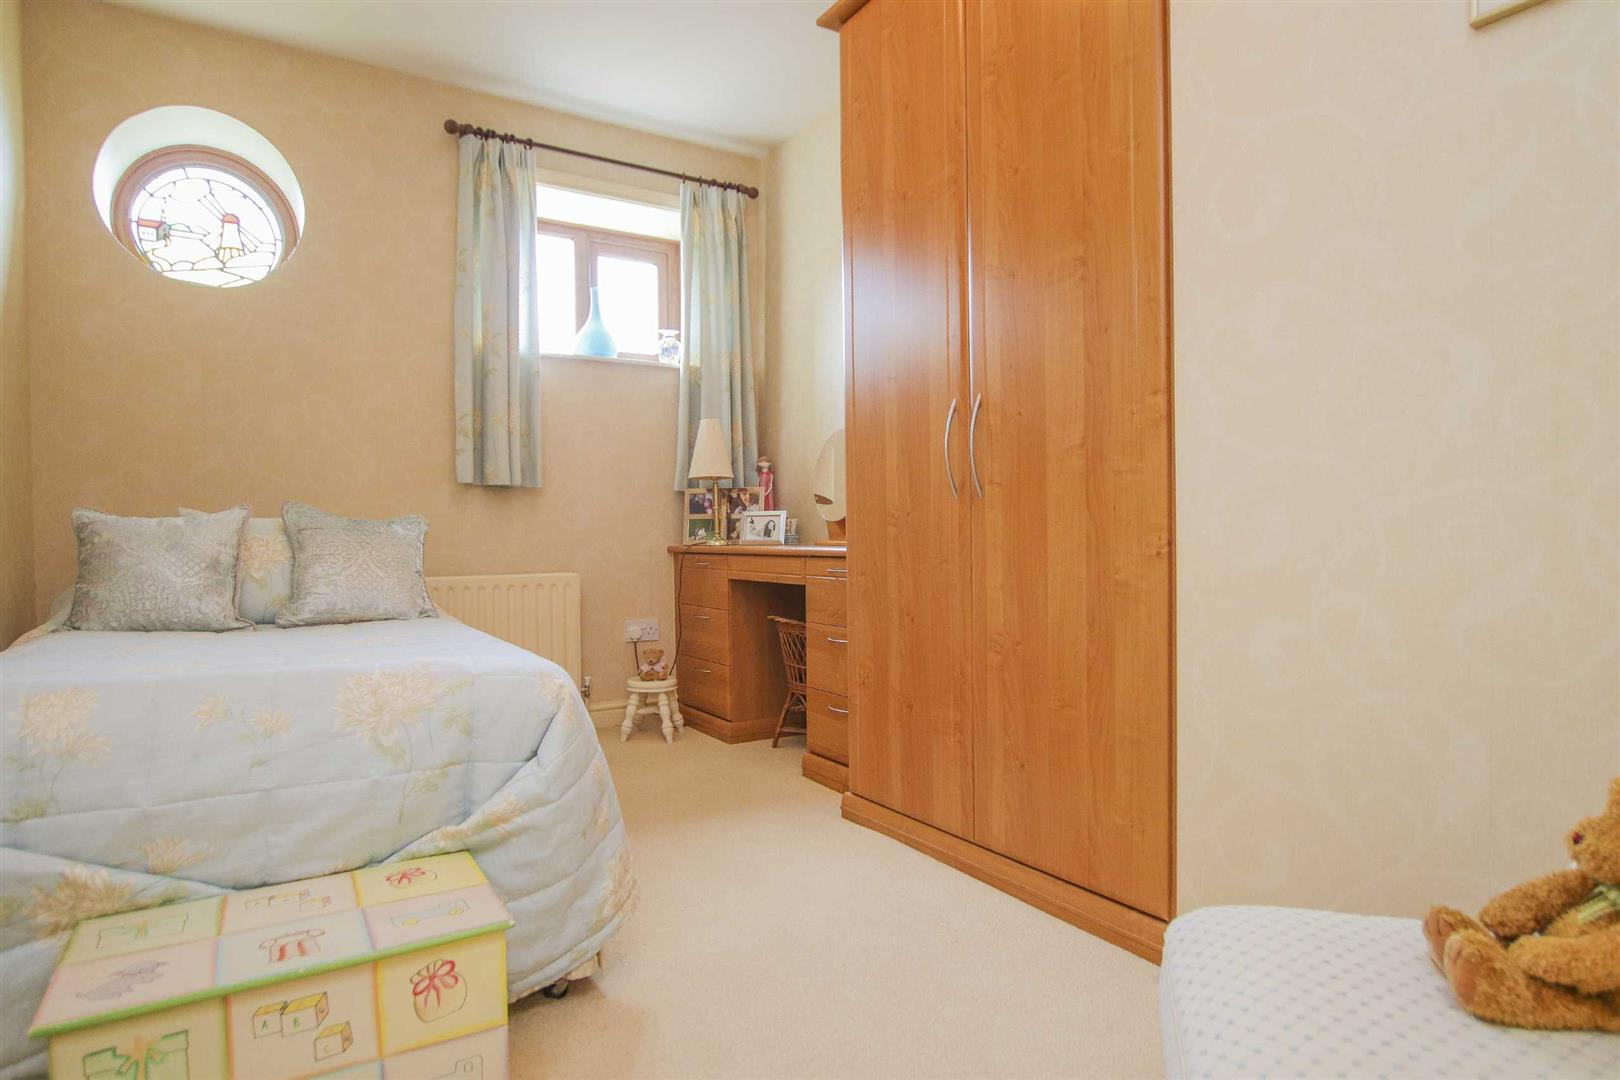 4 Bedroom Barn Conversion For Sale - p033135_05.jpg